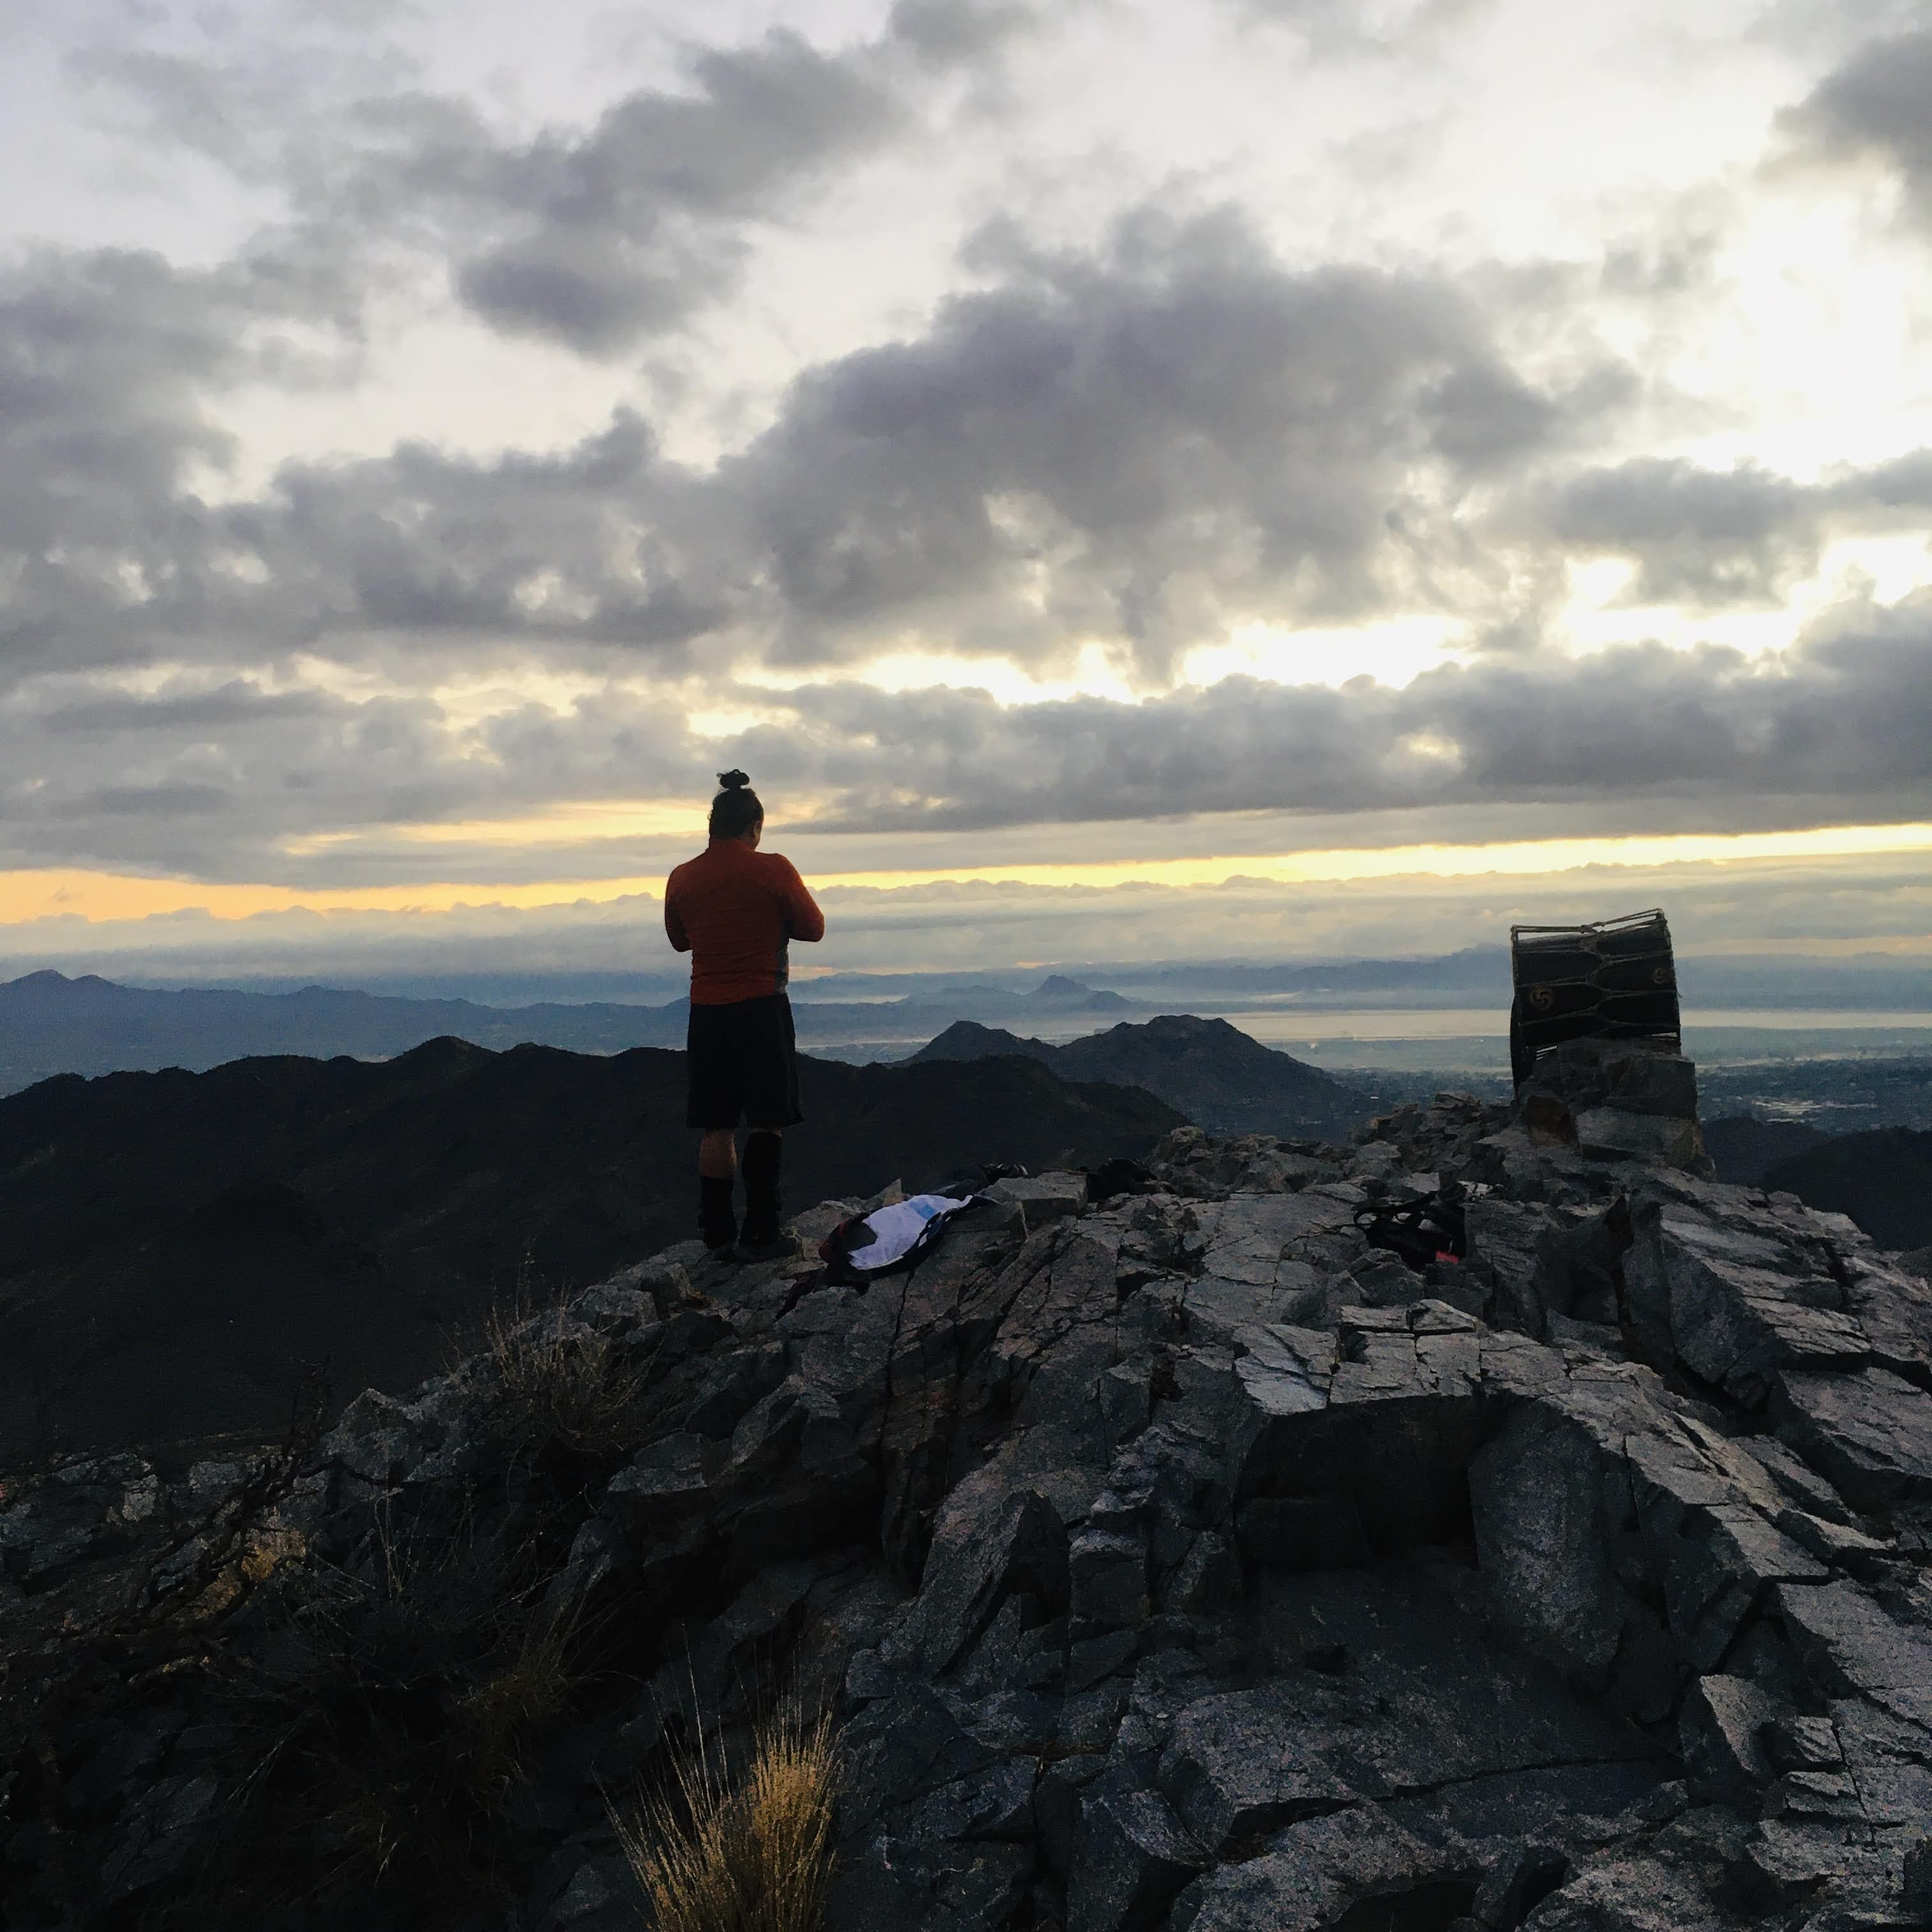 Man on top of mountain as sun rises in background